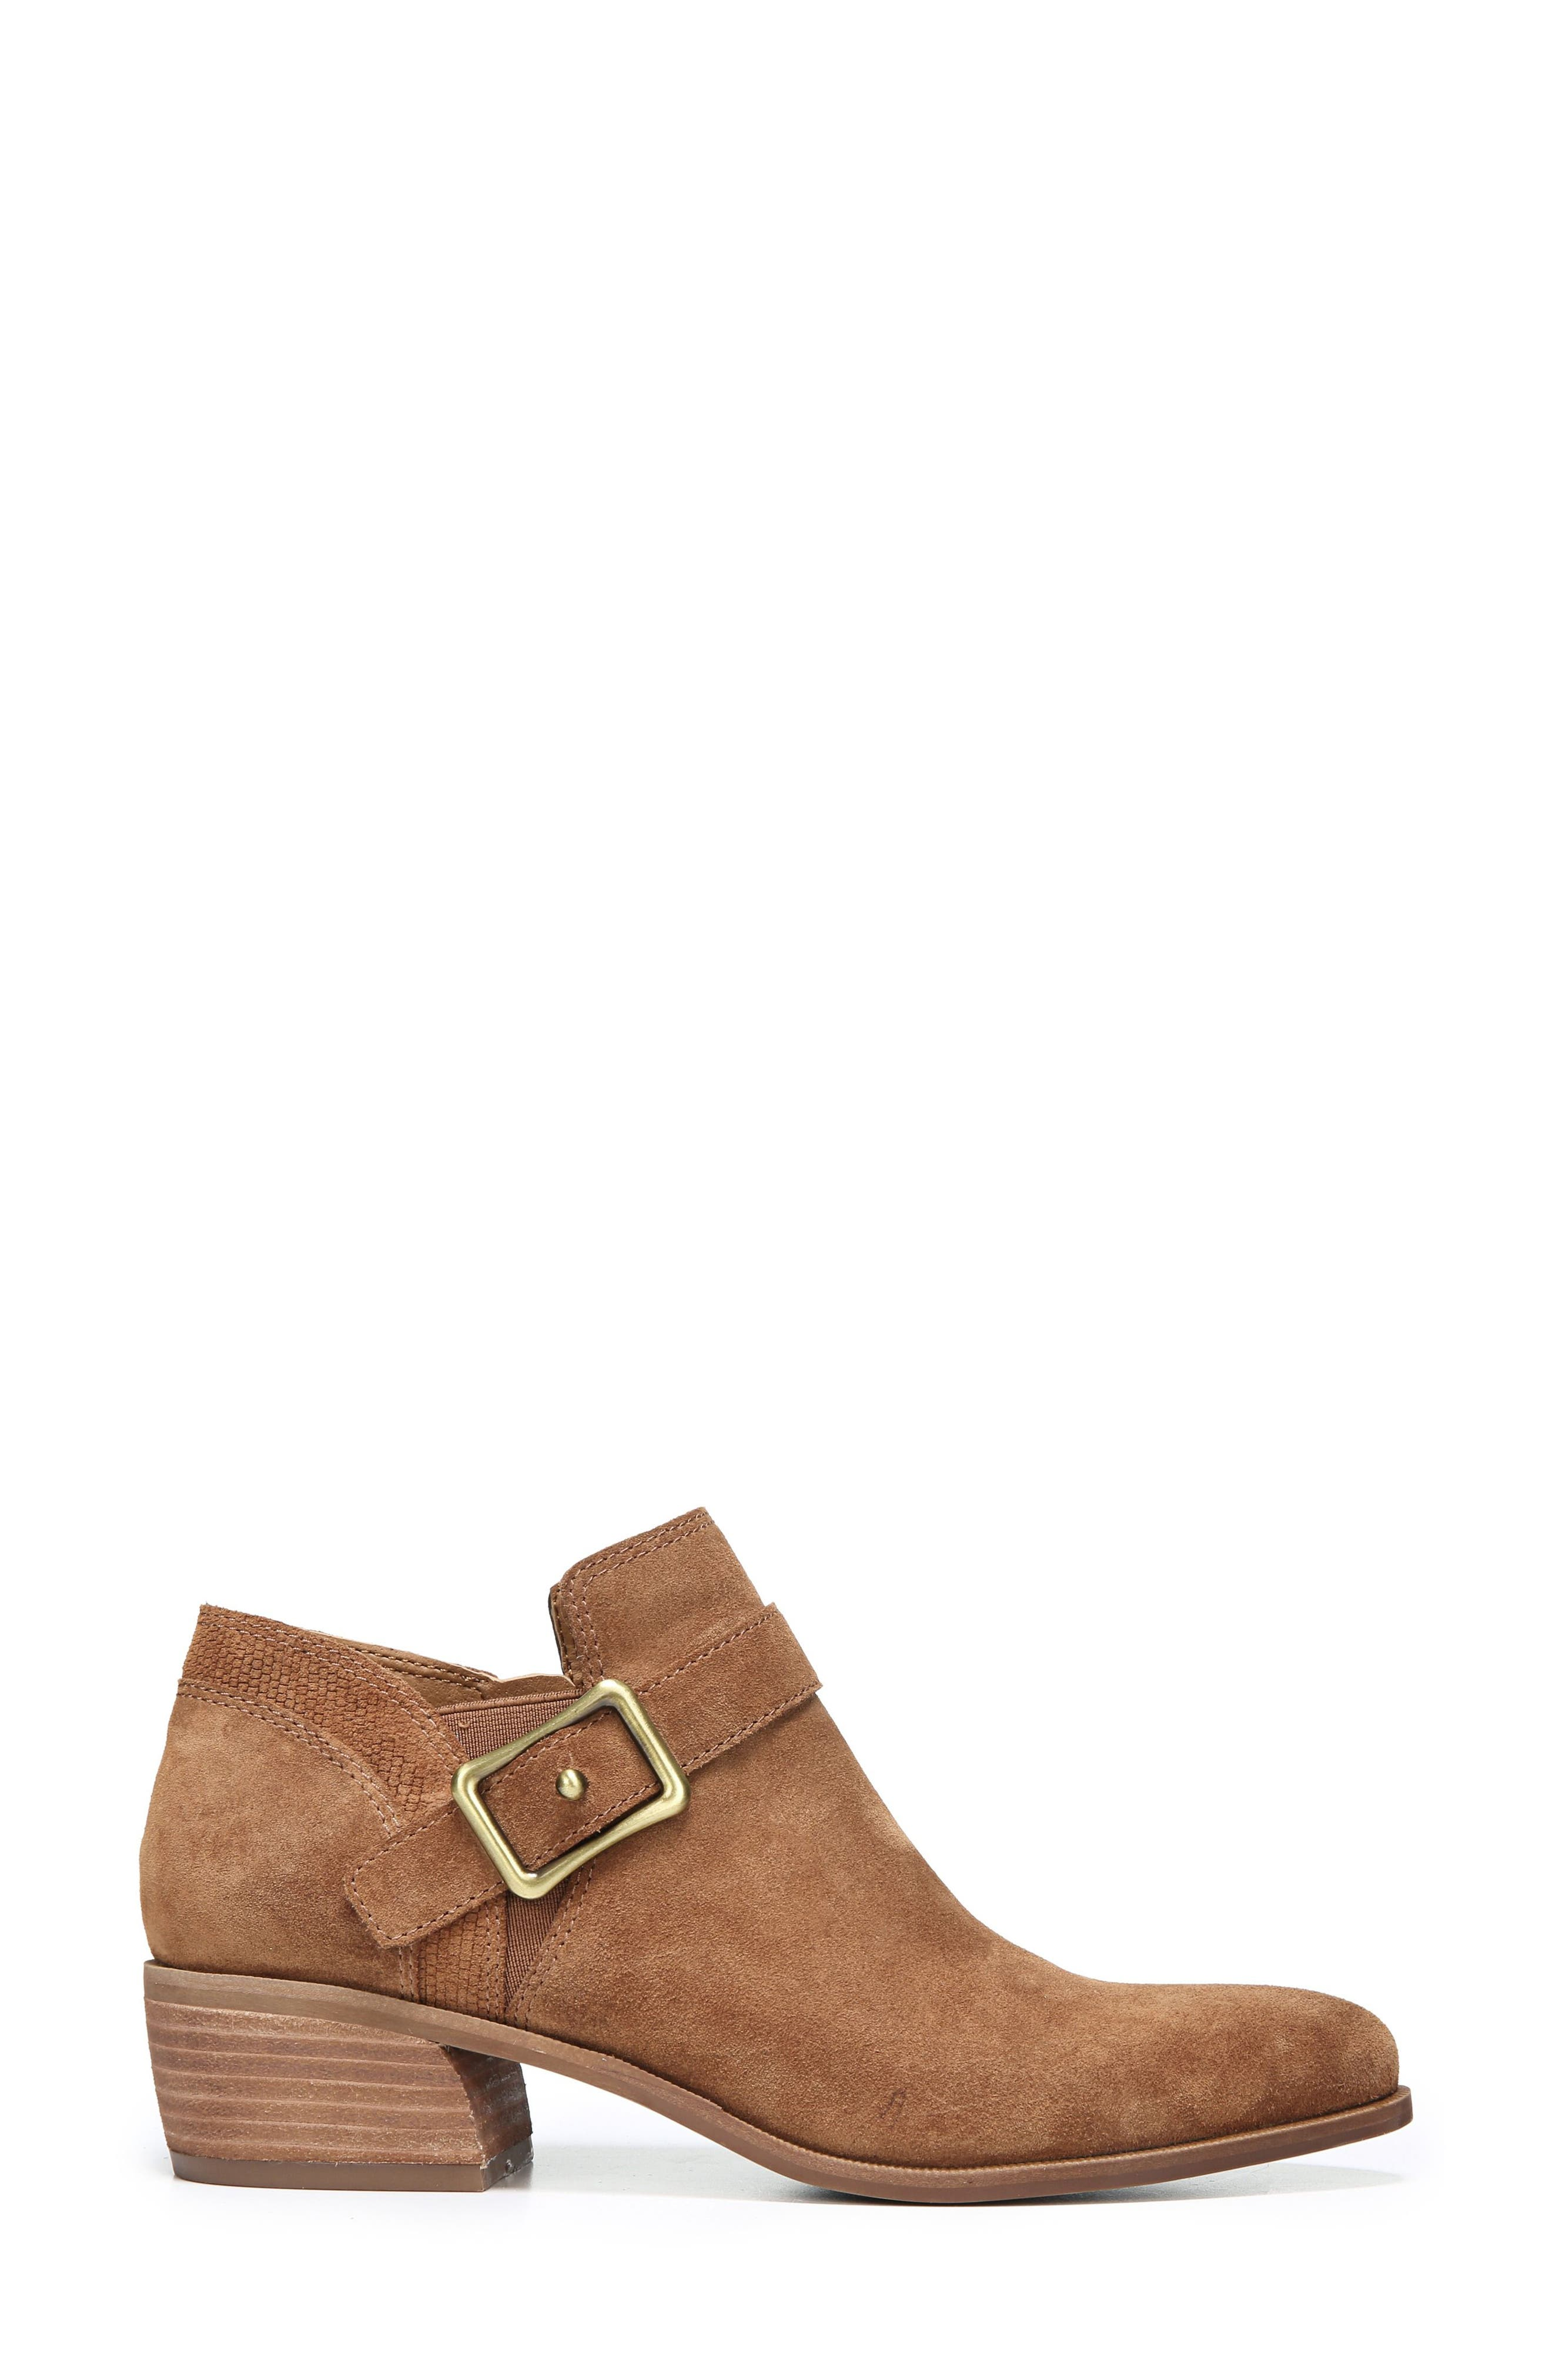 Penna Bootie,                             Alternate thumbnail 3, color,                             Whiskey Suede